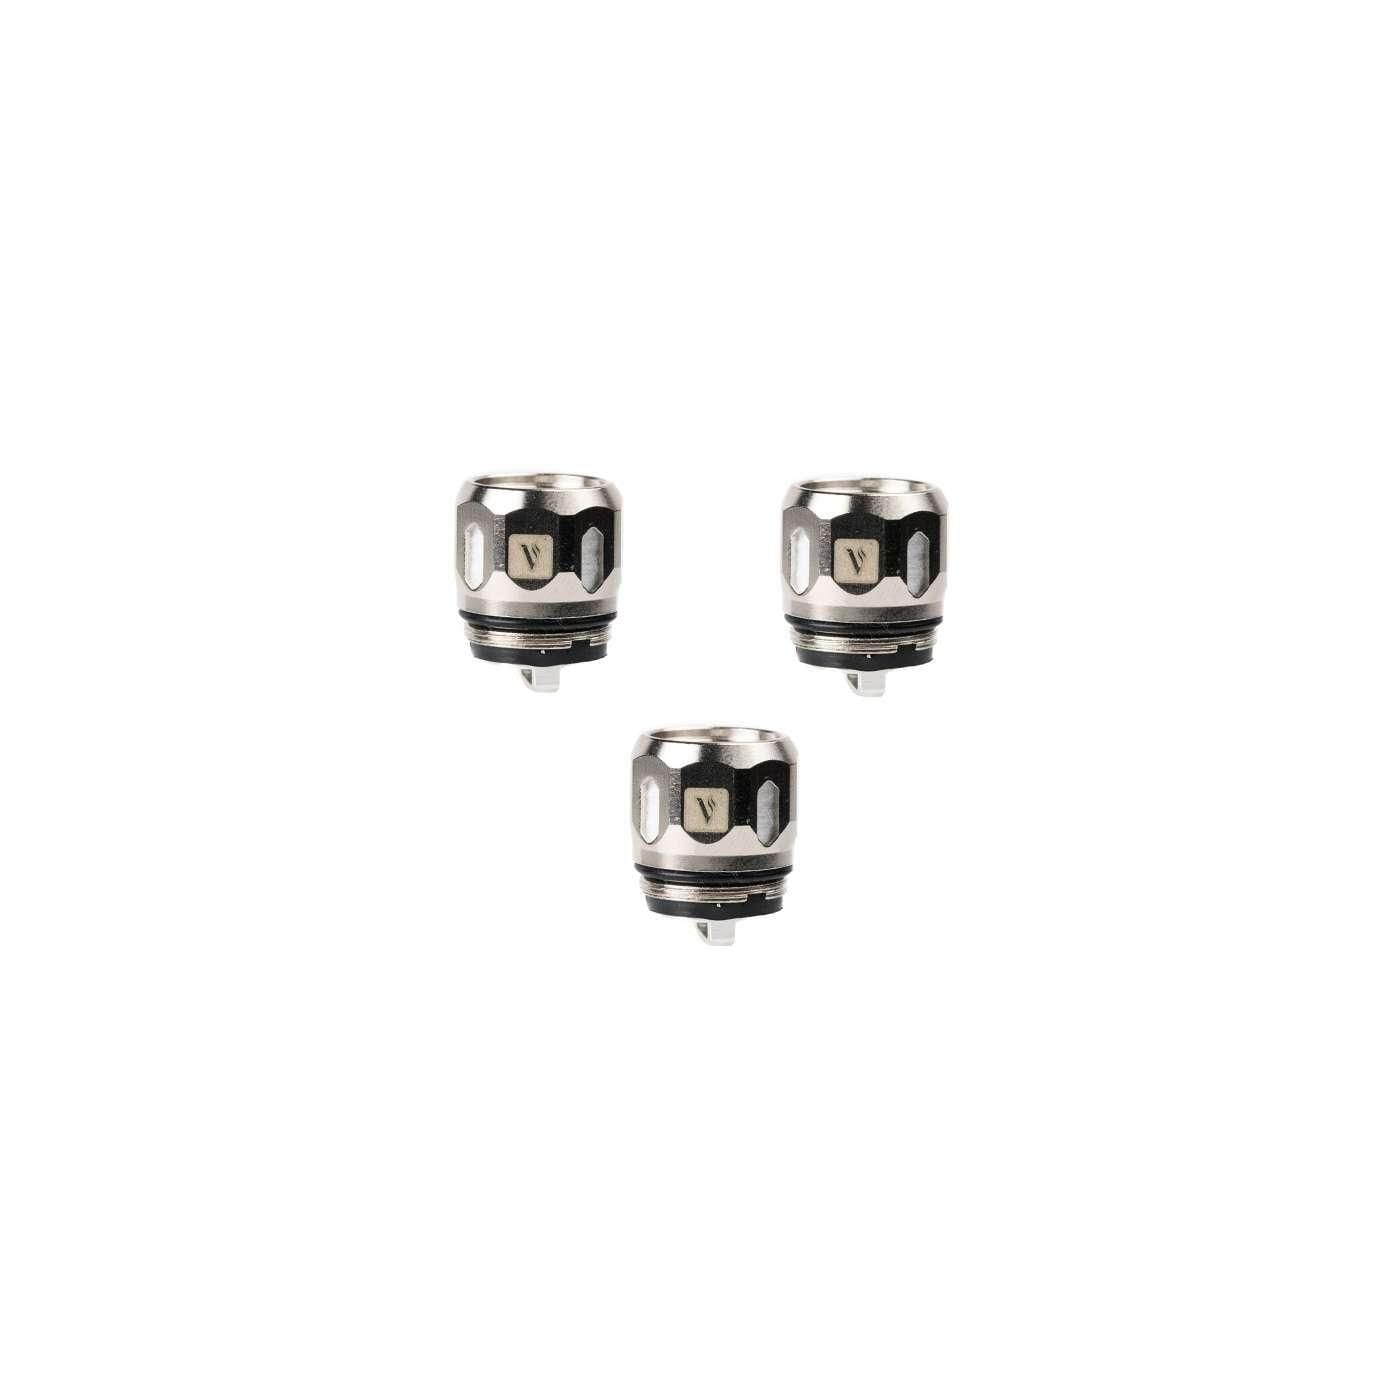 Vaporesso GT cCell Replacement Coil - 3 Pack